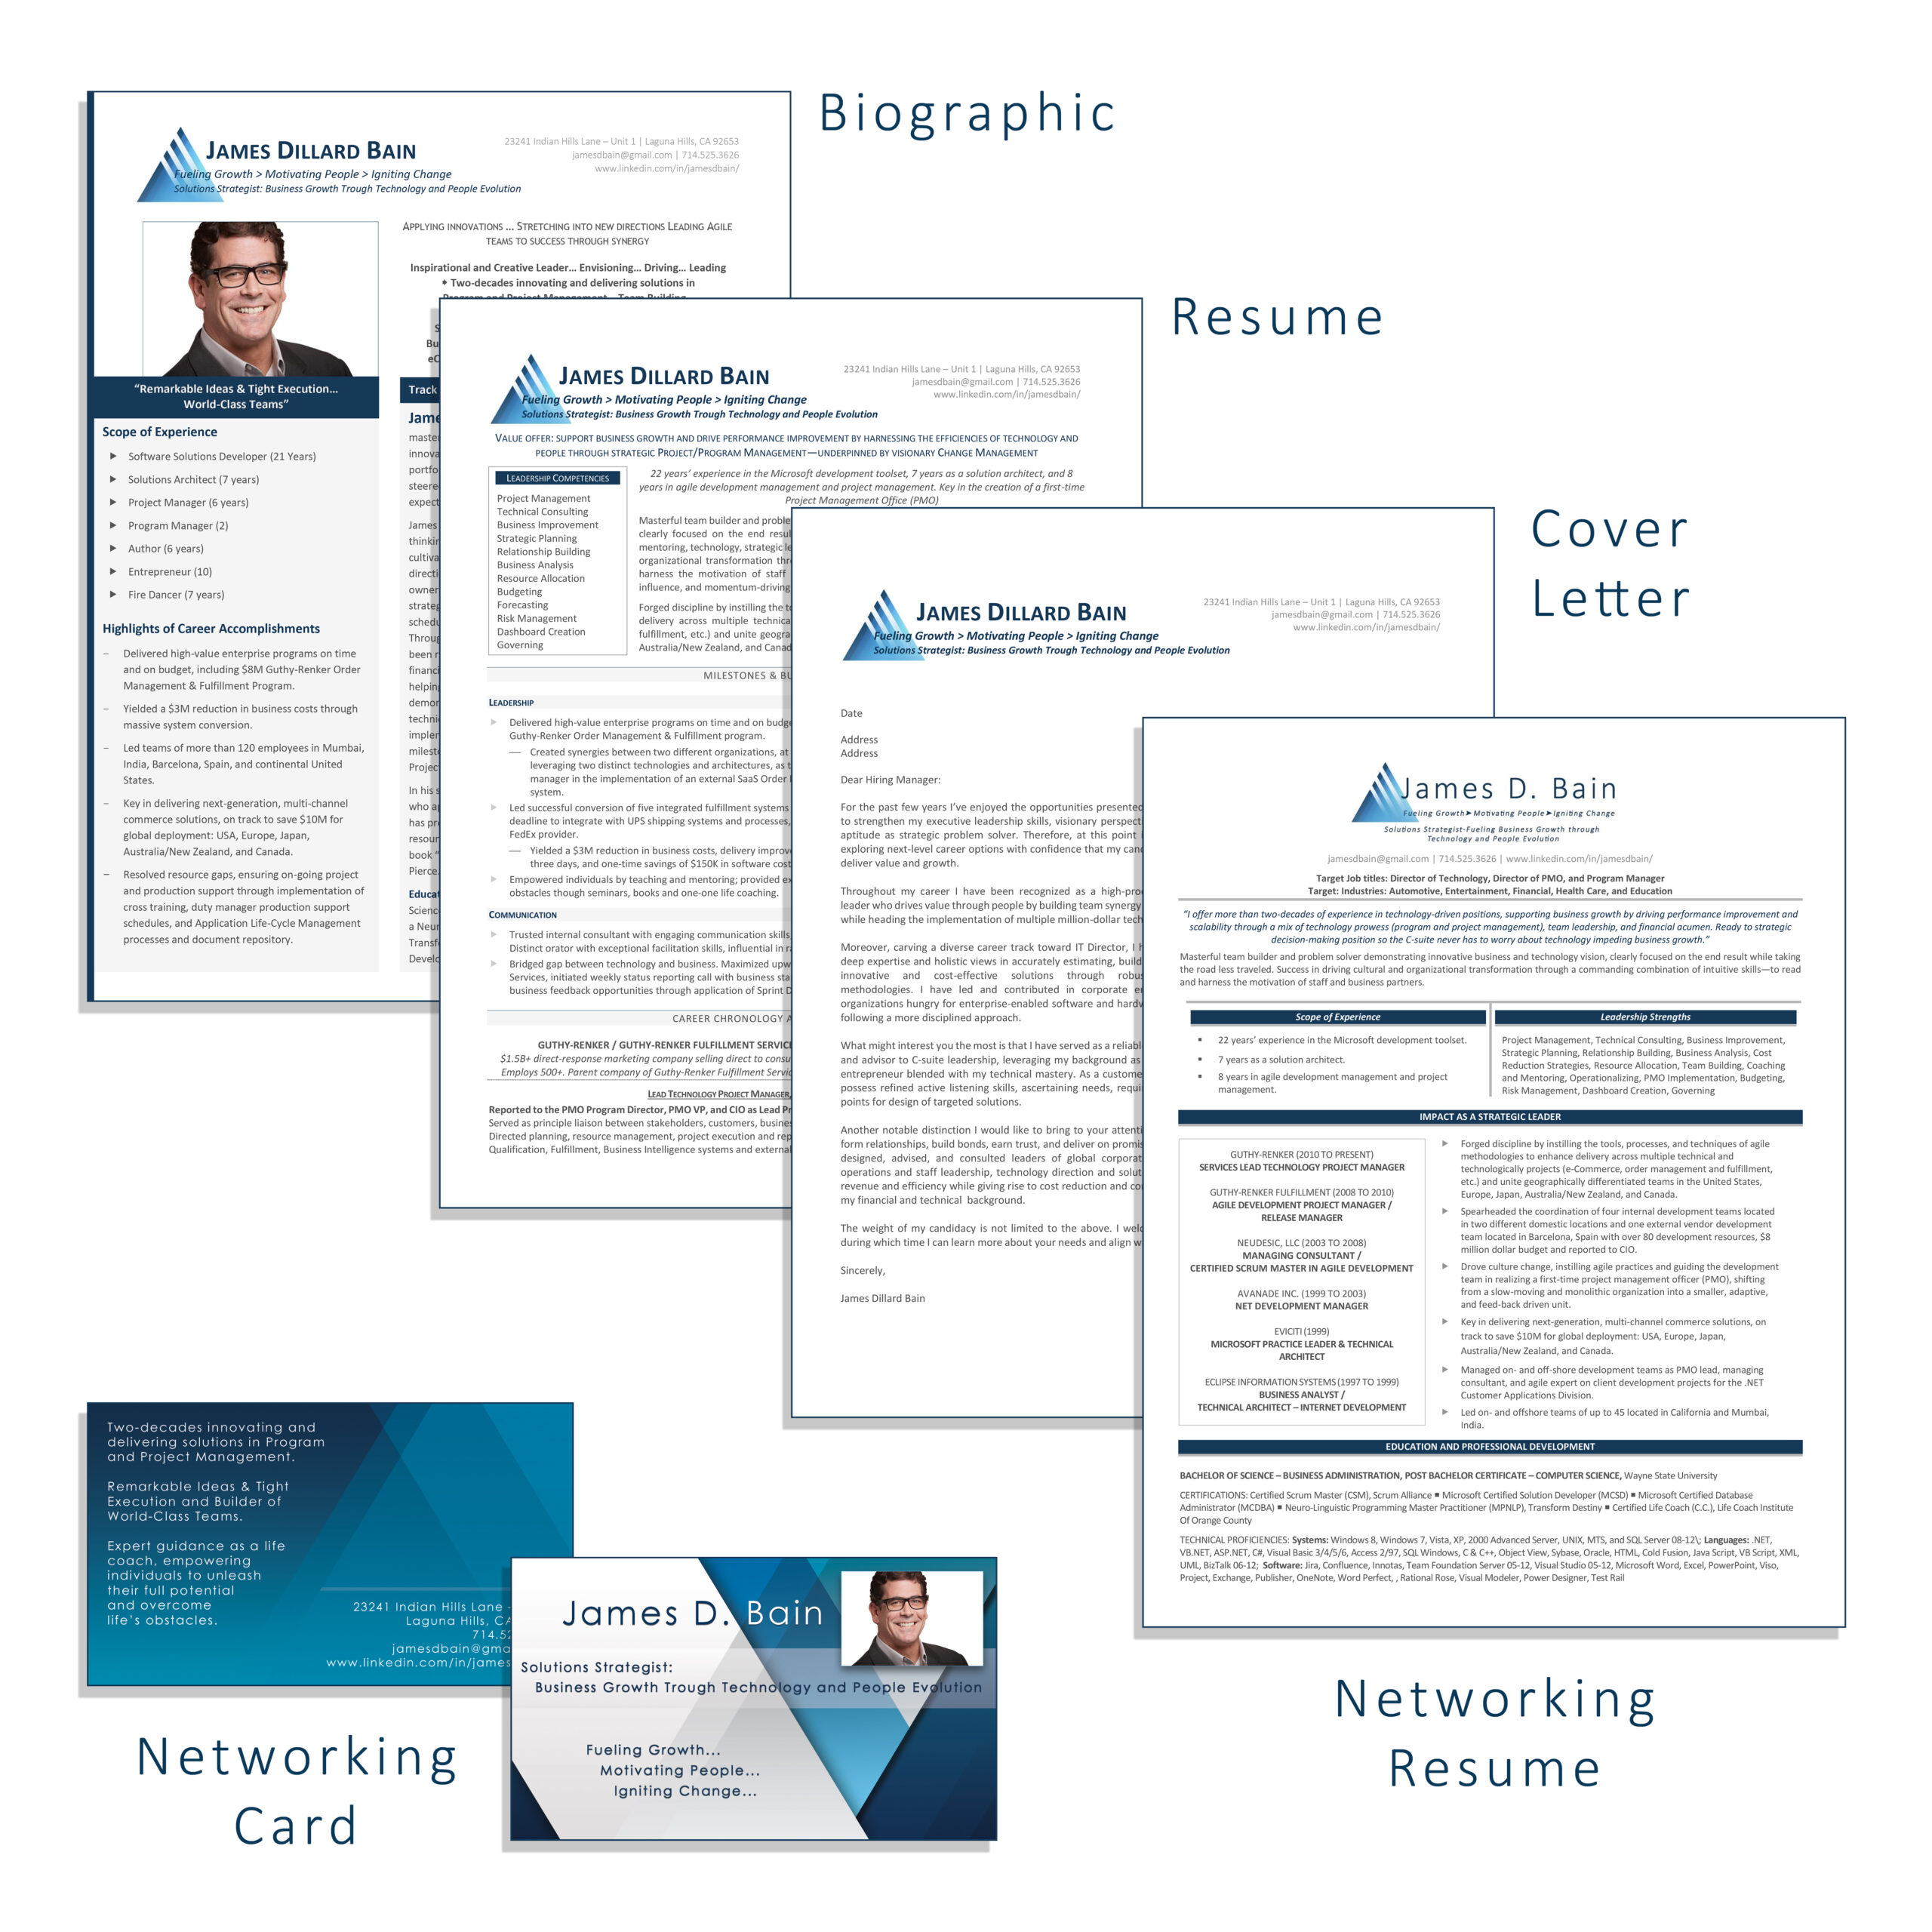 premier executive resume packages writing services james dillard bain all child senior Resume Executive Resume Packages